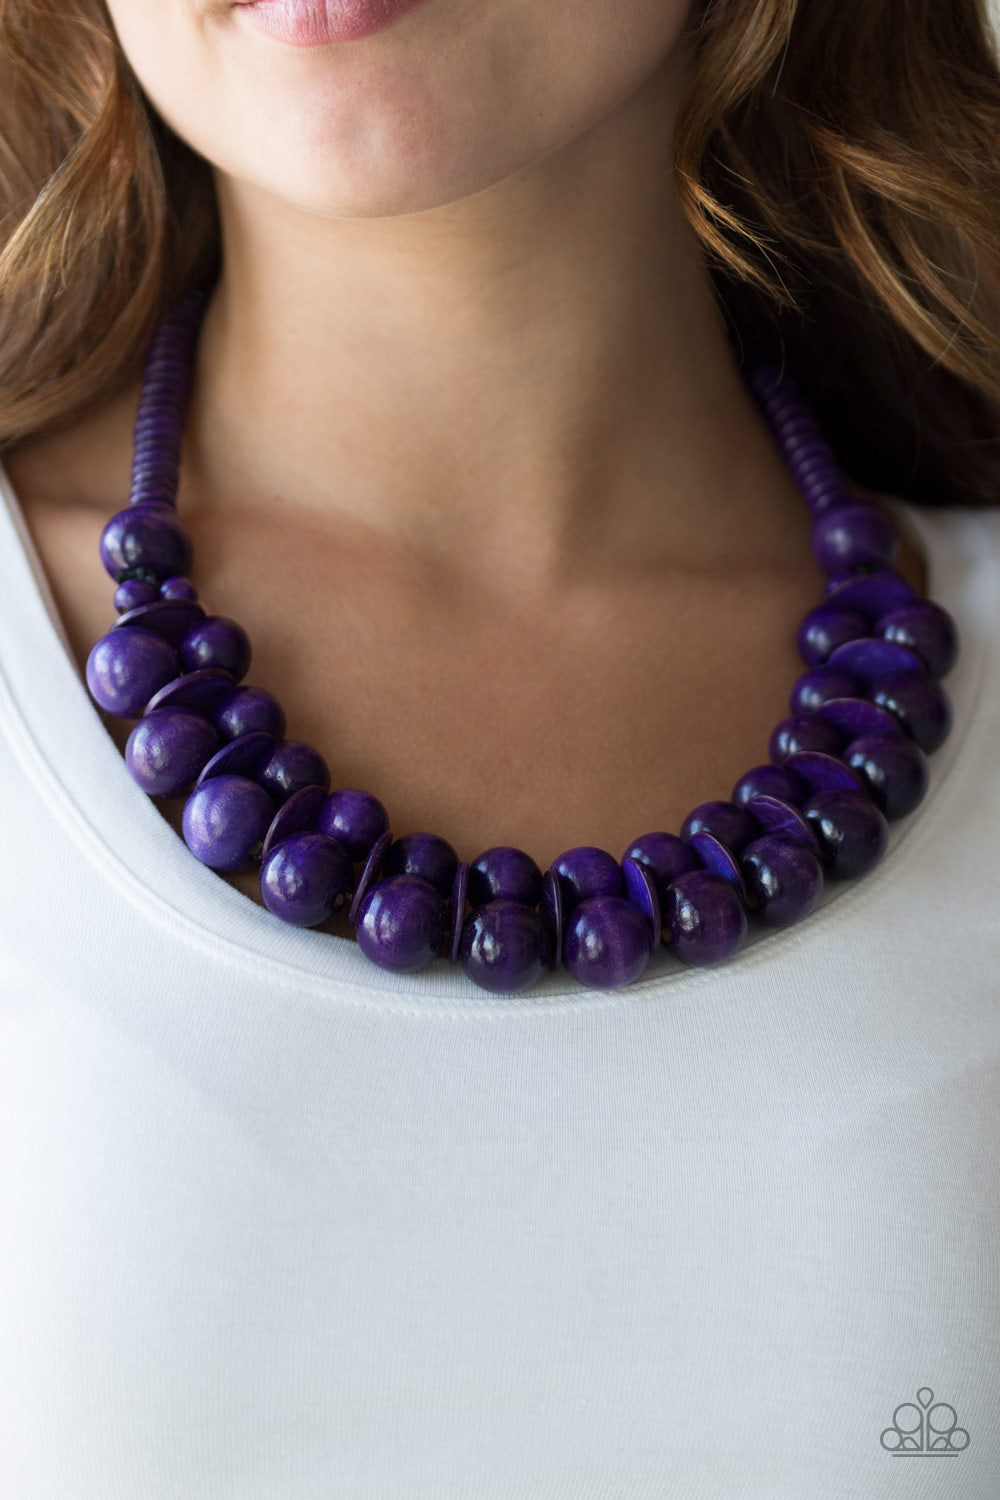 Caribbean Cover Girl - Purple Wooden Beads Paparazzi Jewelry Necklace paparazzi accessories jewelry Necklaces